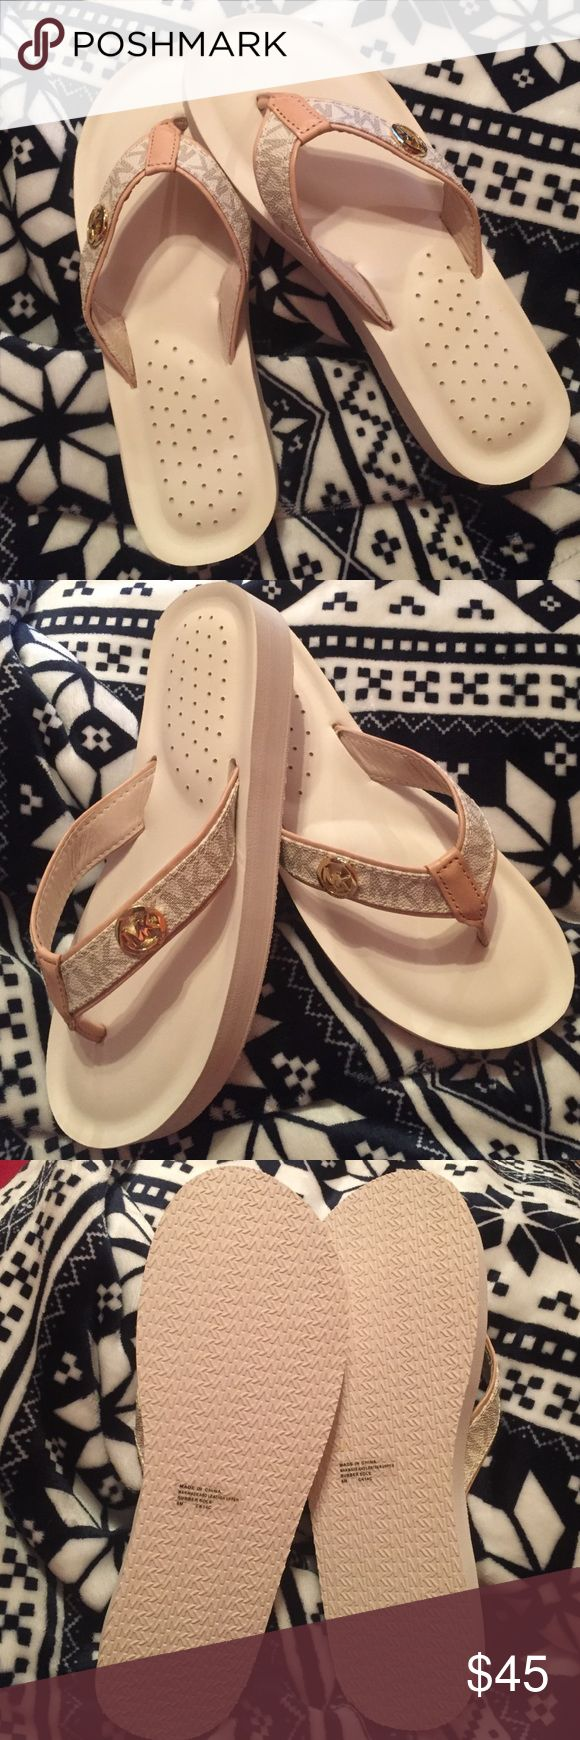 Michael Kors flip flops Nice cream color new only missing 📦 newer use Michael Kors Shoes Slippers